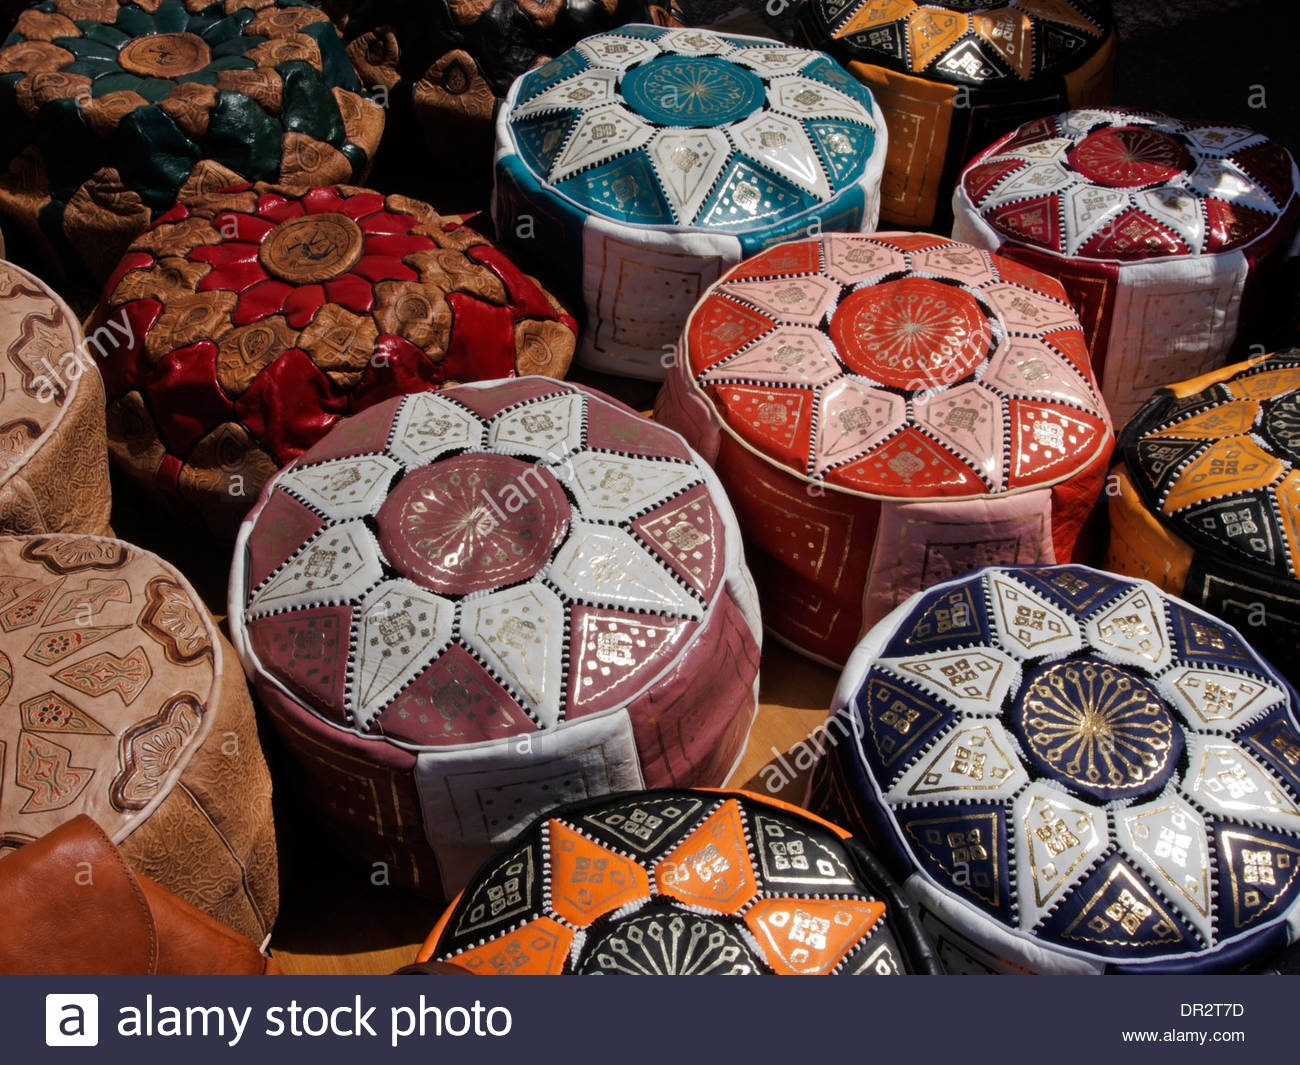 Brightly Coloured Leather Goods Like These Pouffes Or Footstools Regarding Pouffes And Footstools For Sale (Image 2 of 15)